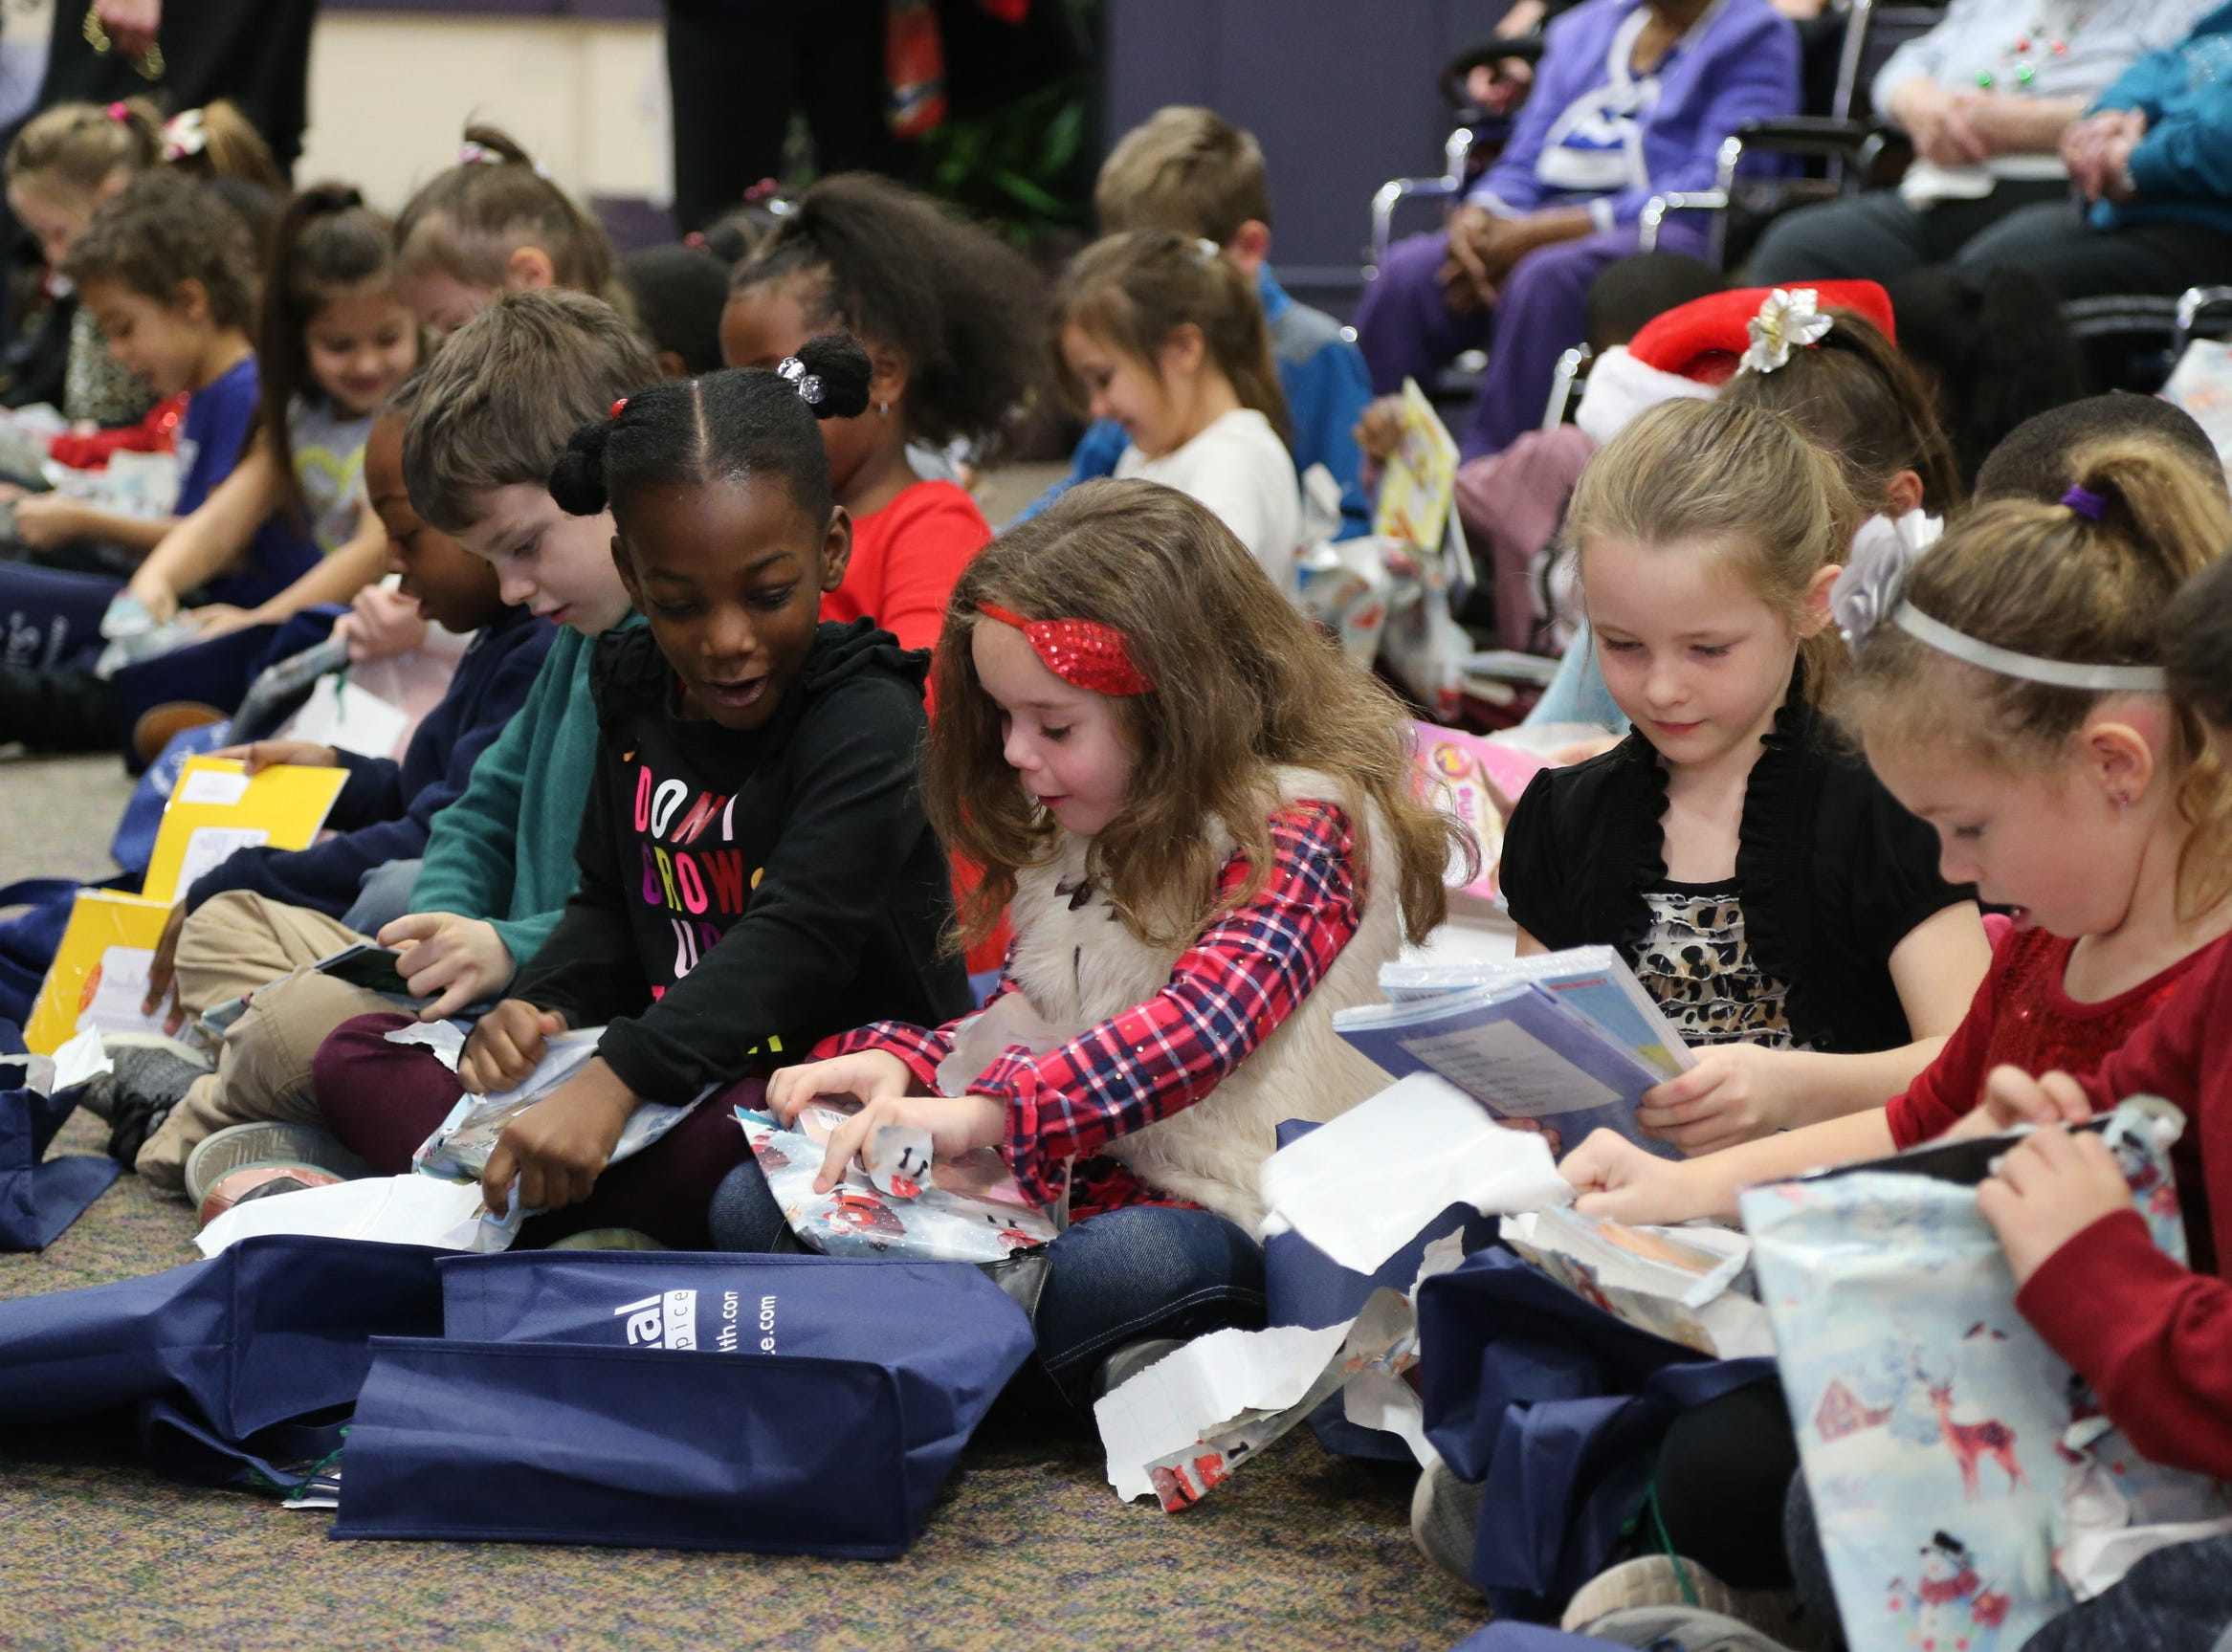 First-grade students from Botsford Elementary excitedly open gifts of books from residents and staff at Botsford Commons.